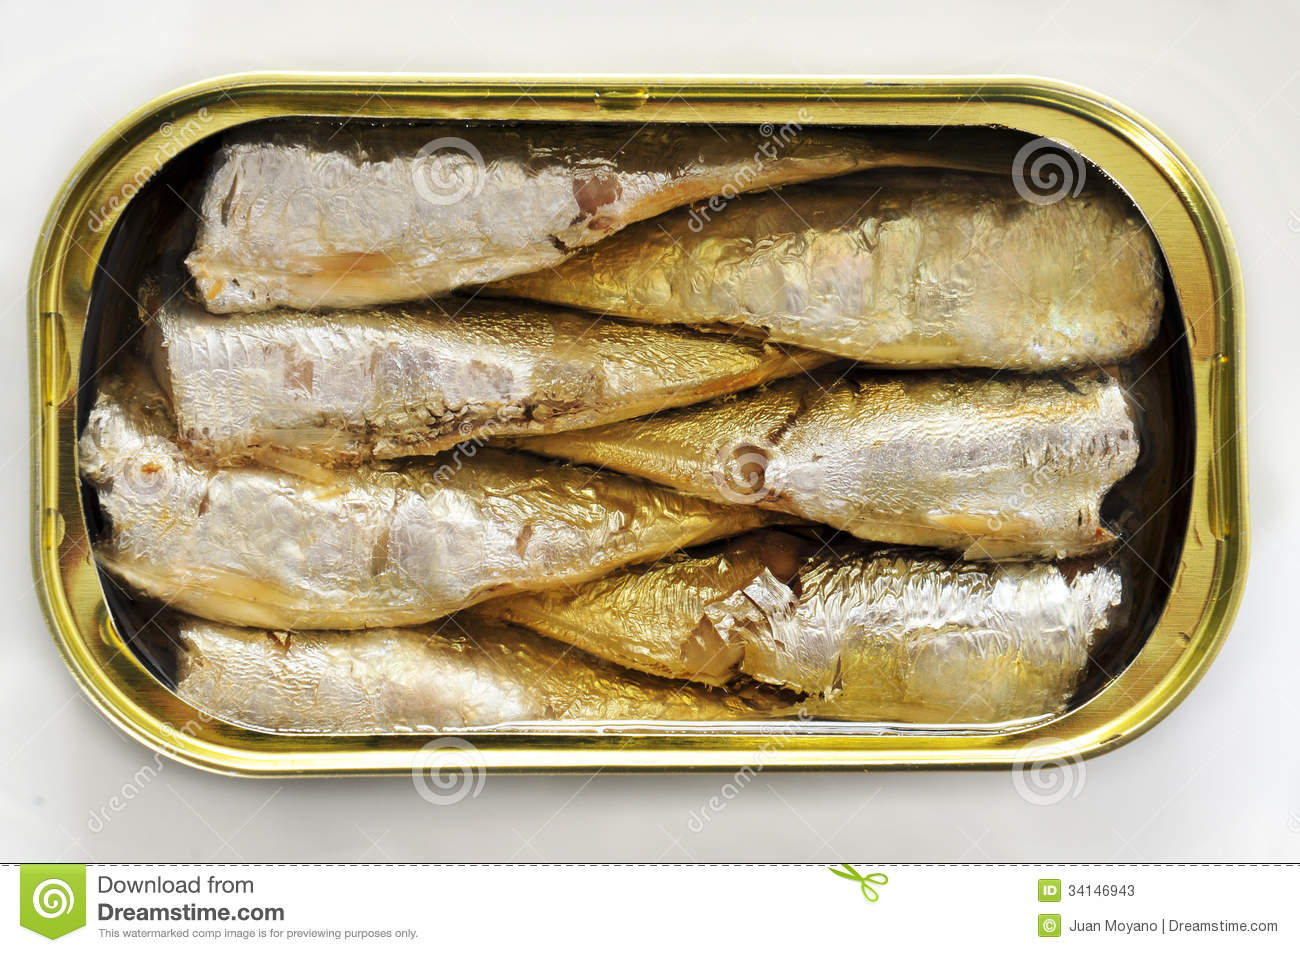 how to prepare canned sardines